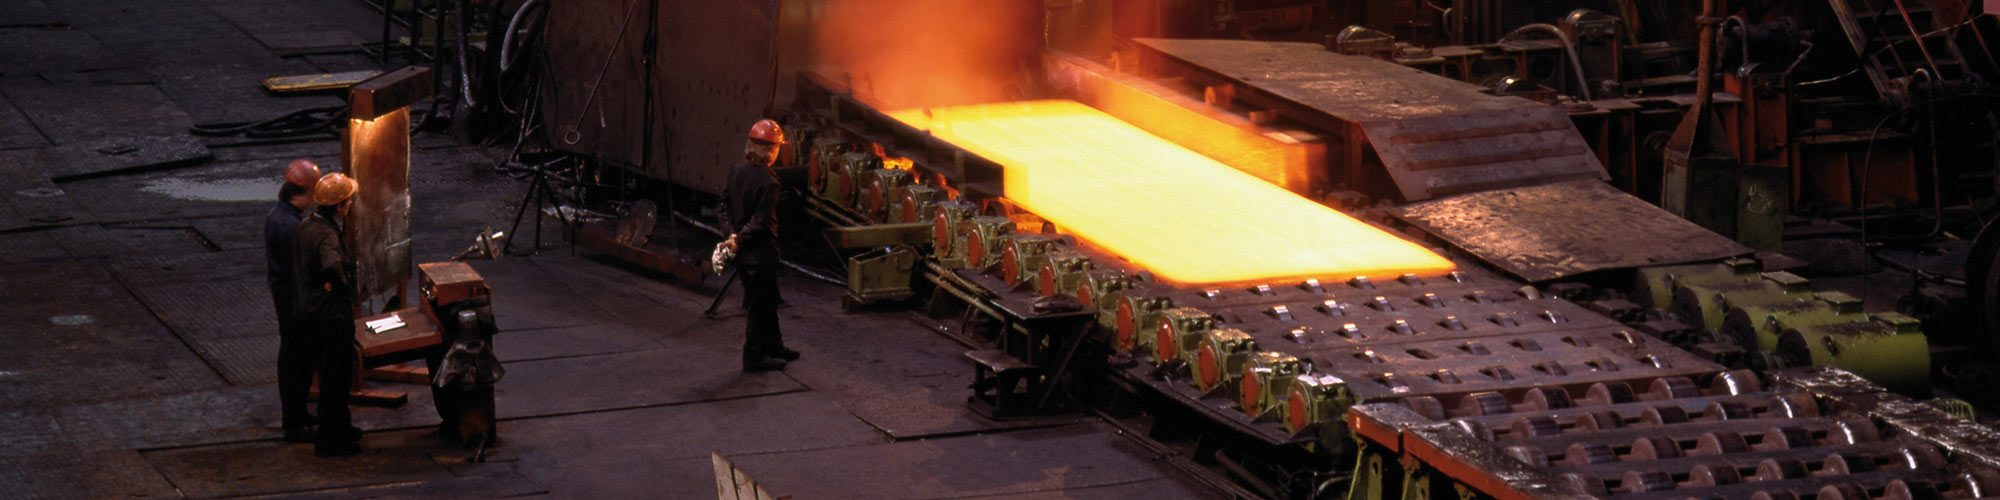 Smooth operation of smelting facilities